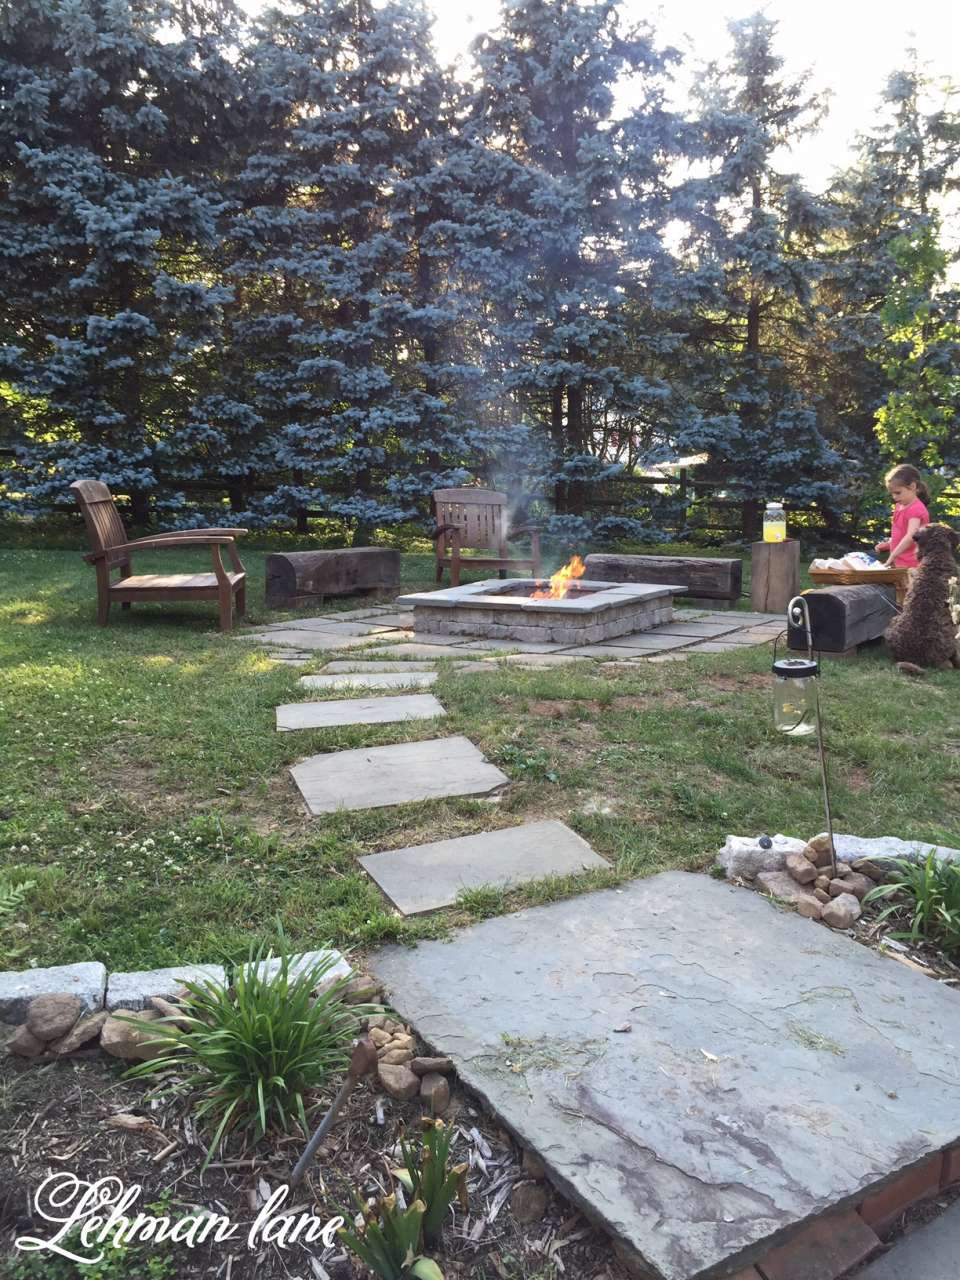 Stone Patio Diy Fire Pit Amp Wood Beam Benches Lehman Lane